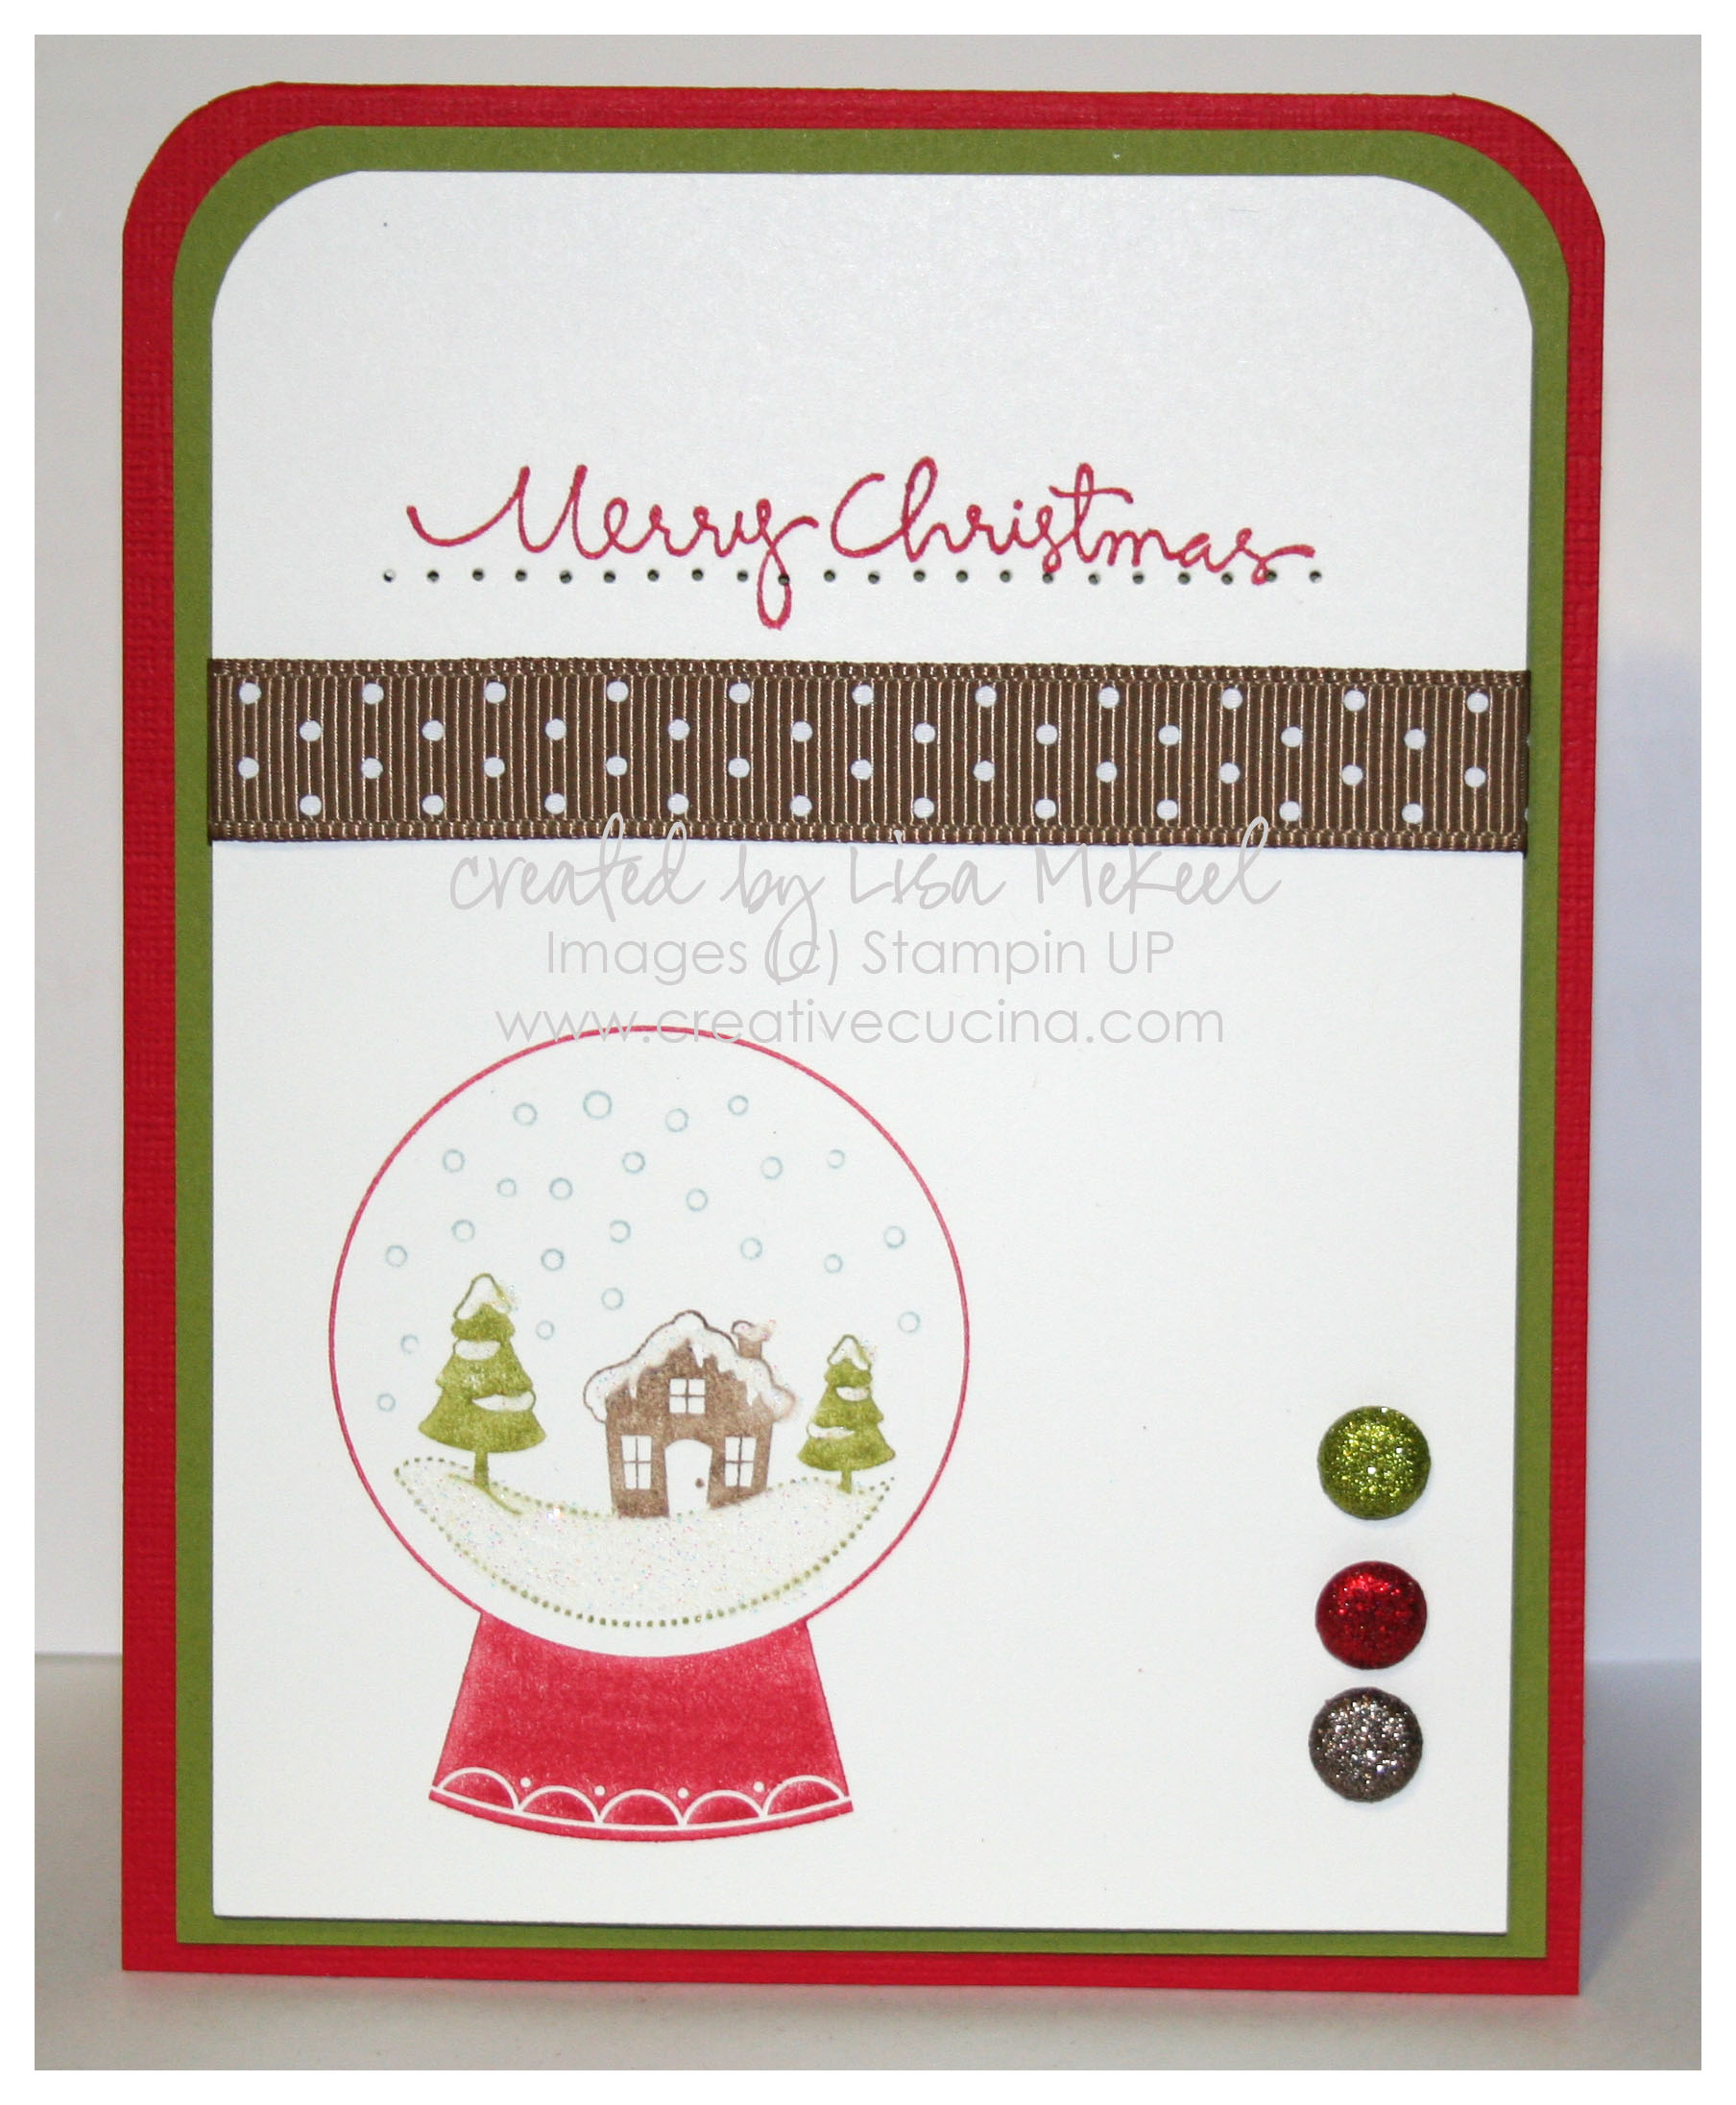 christmas cards Creative Cucina